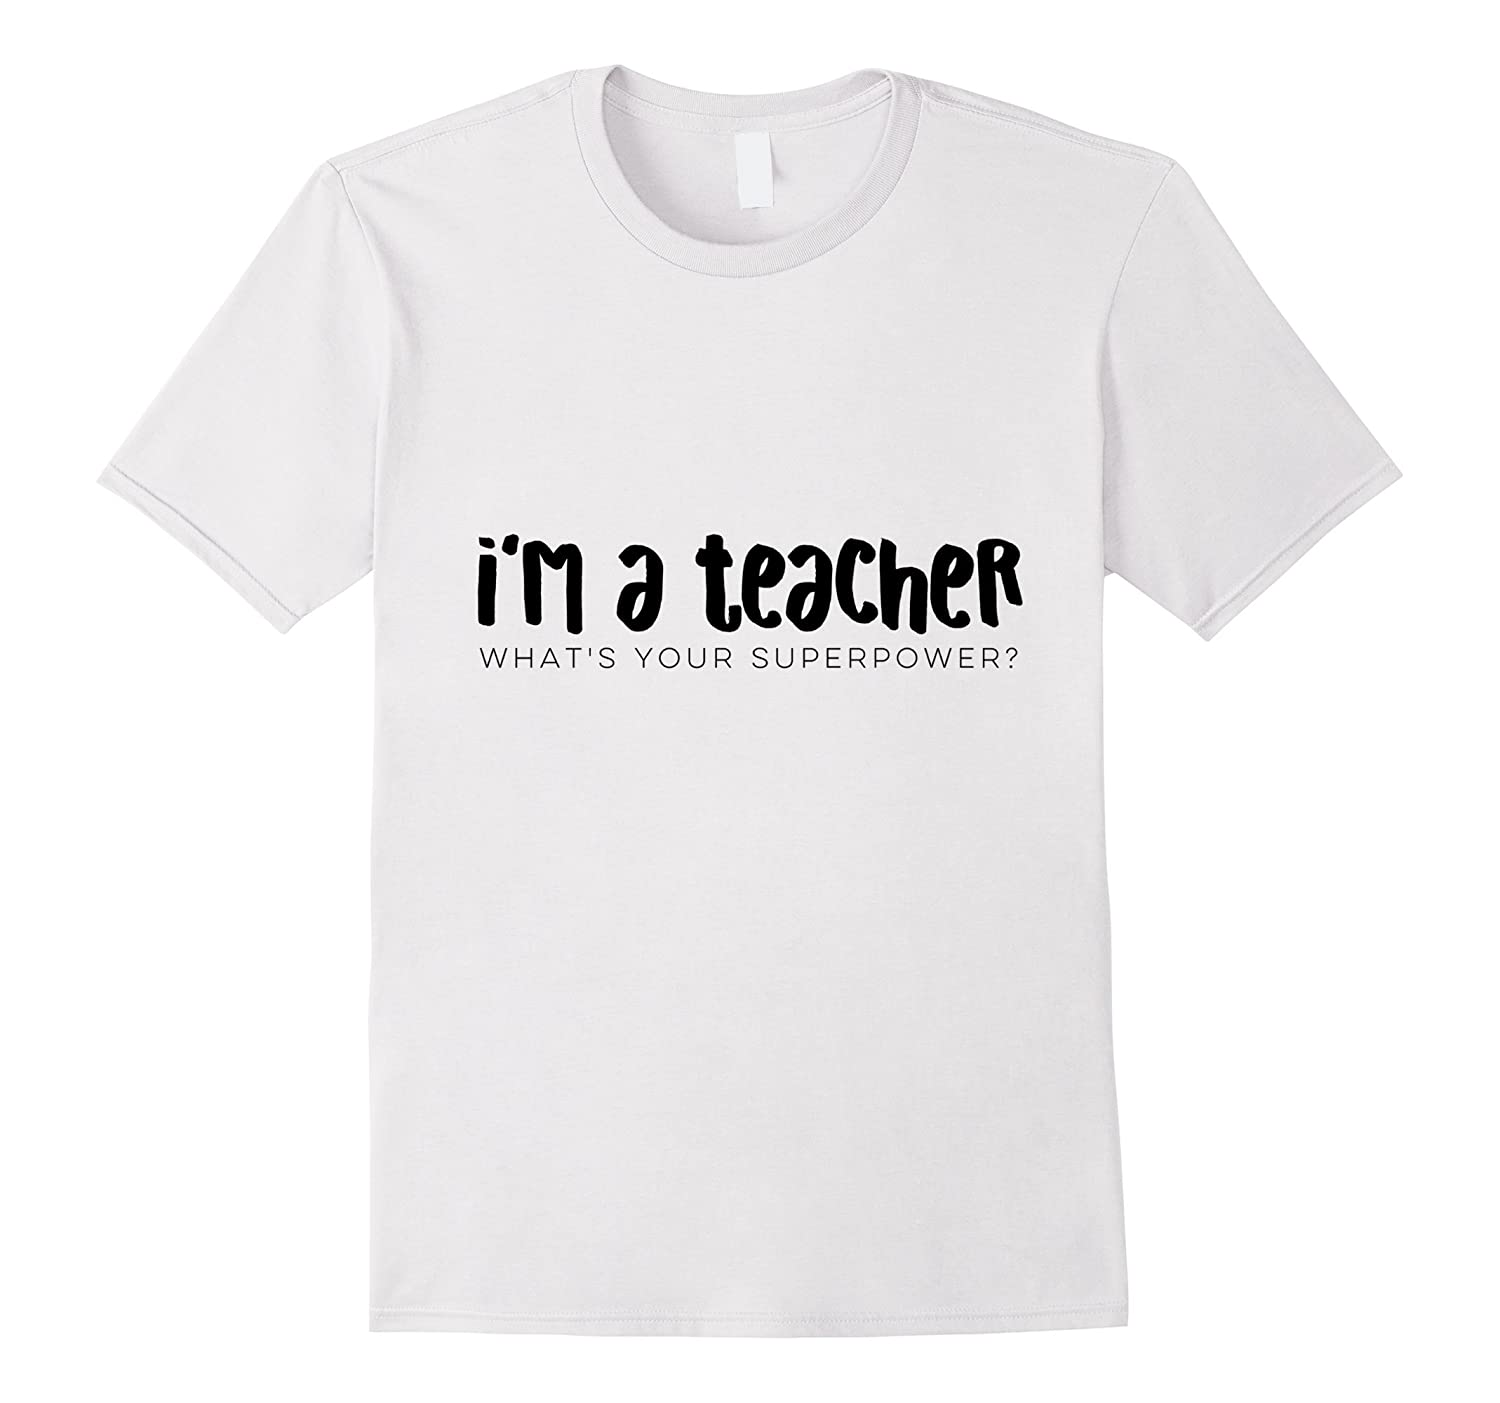 JB Design Co.: Funny Teacher Shirts, Superpower-ANZ